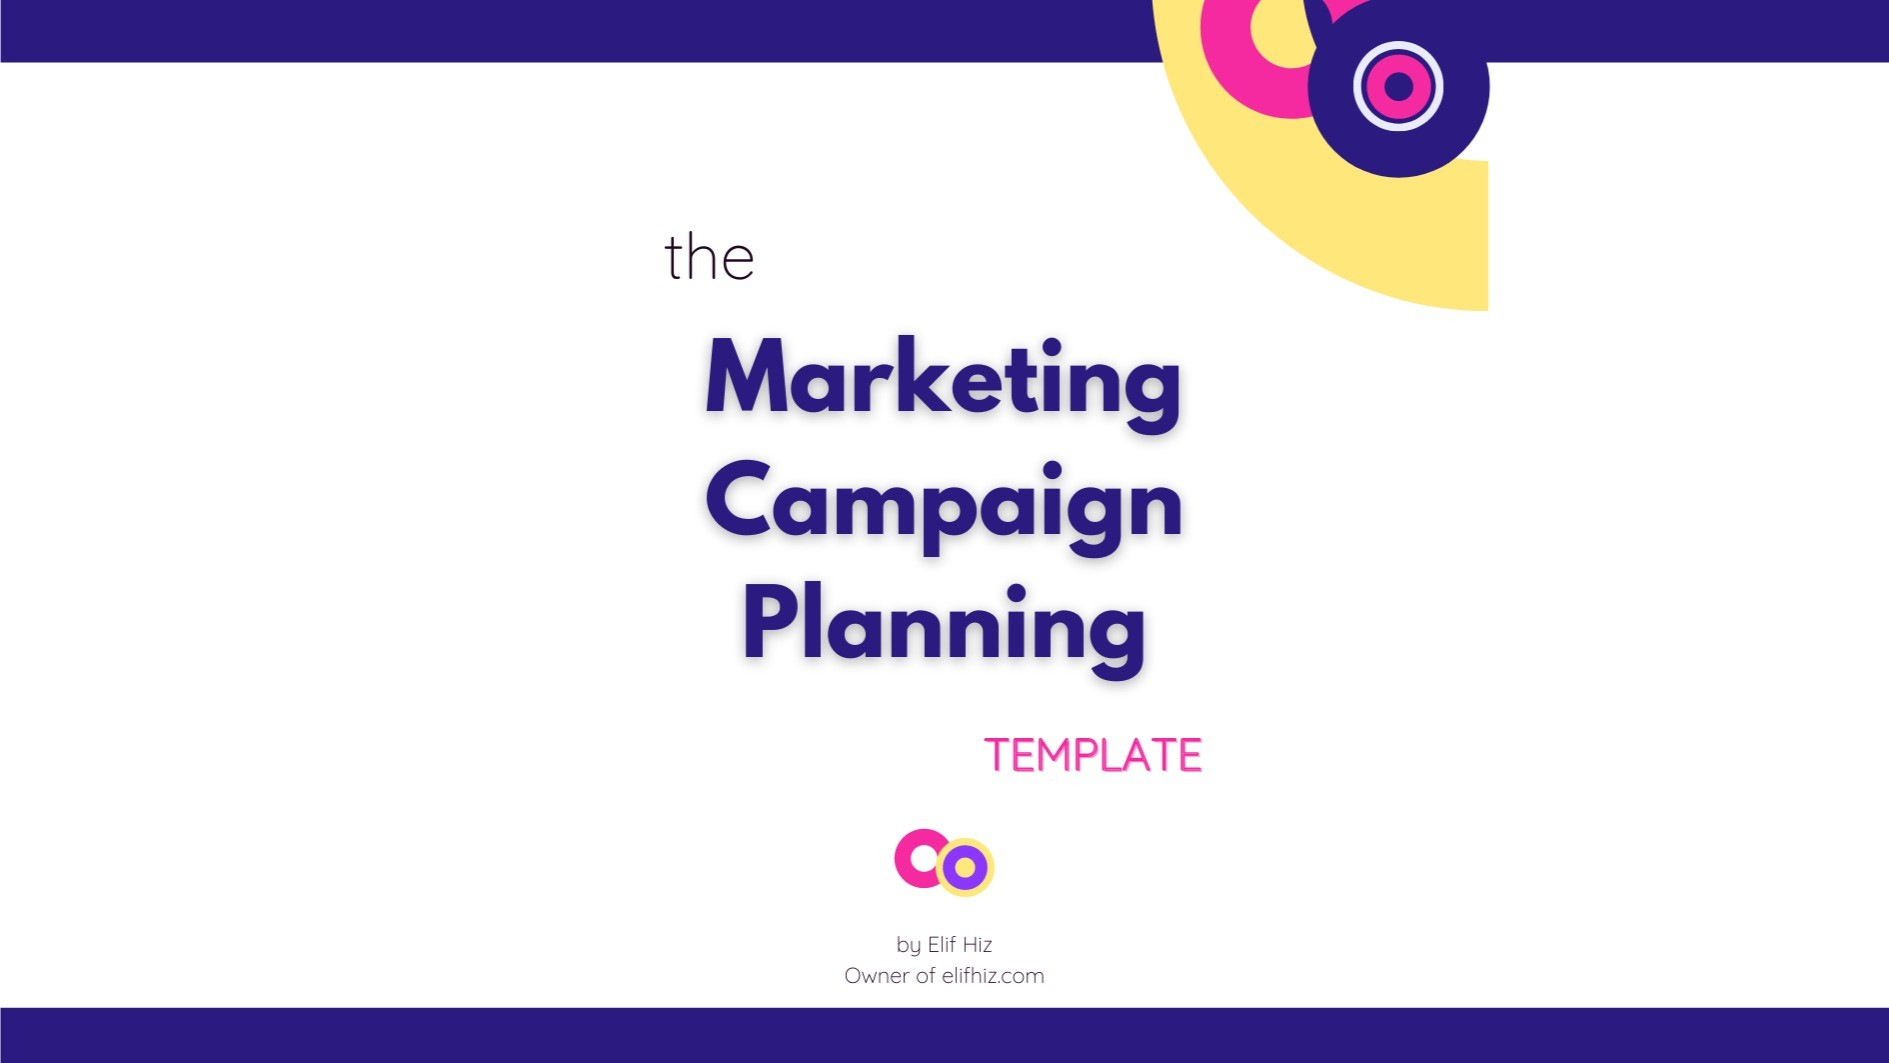 AppSumo Deal for Marketing Campaign Planning Template